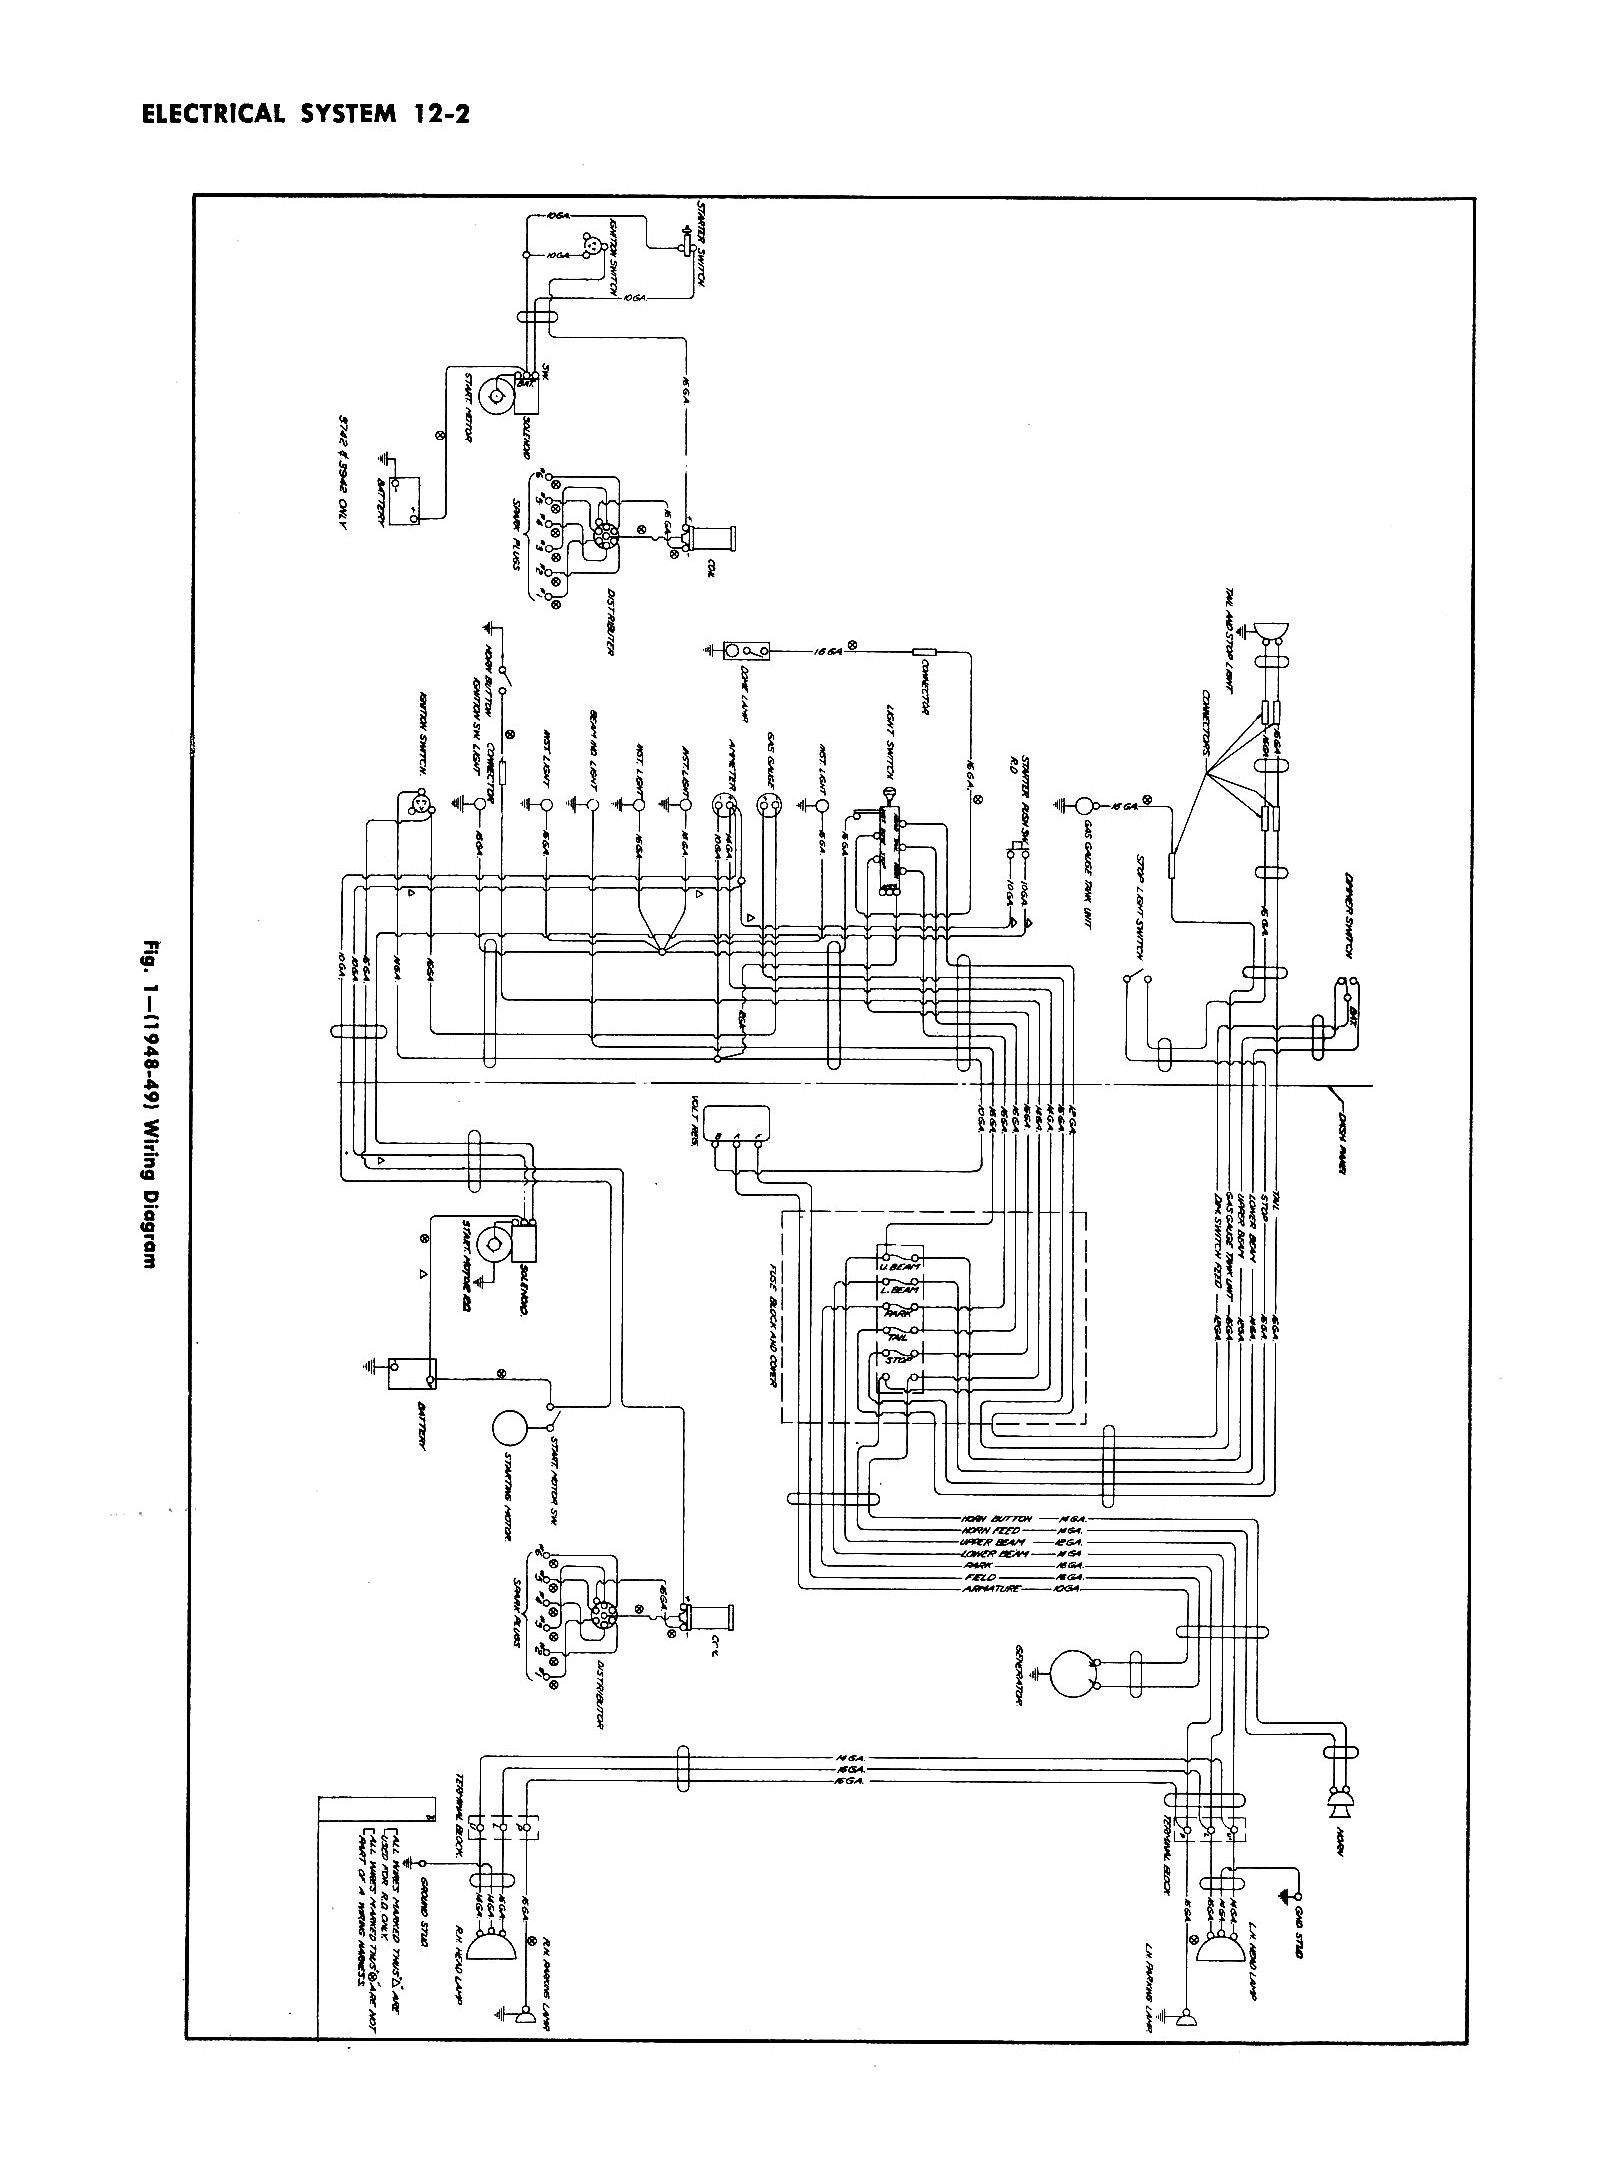 1958 gmc wiring diagram experts of wiring diagram u2022 rh evilcloud co uk 1995  gmc jimmy